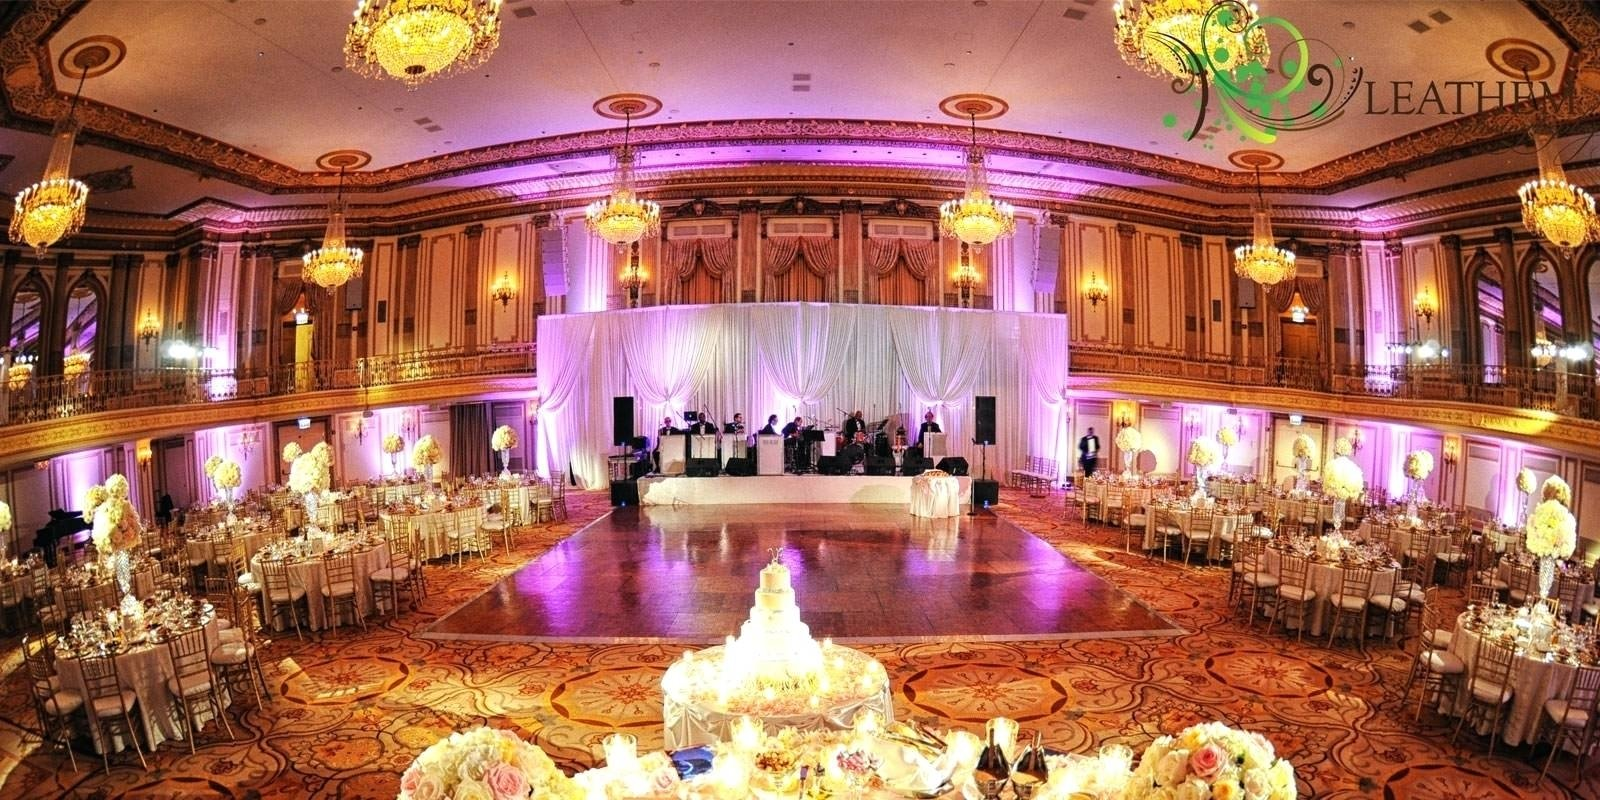 Imágenes de Creative Wedding Reception Ideas